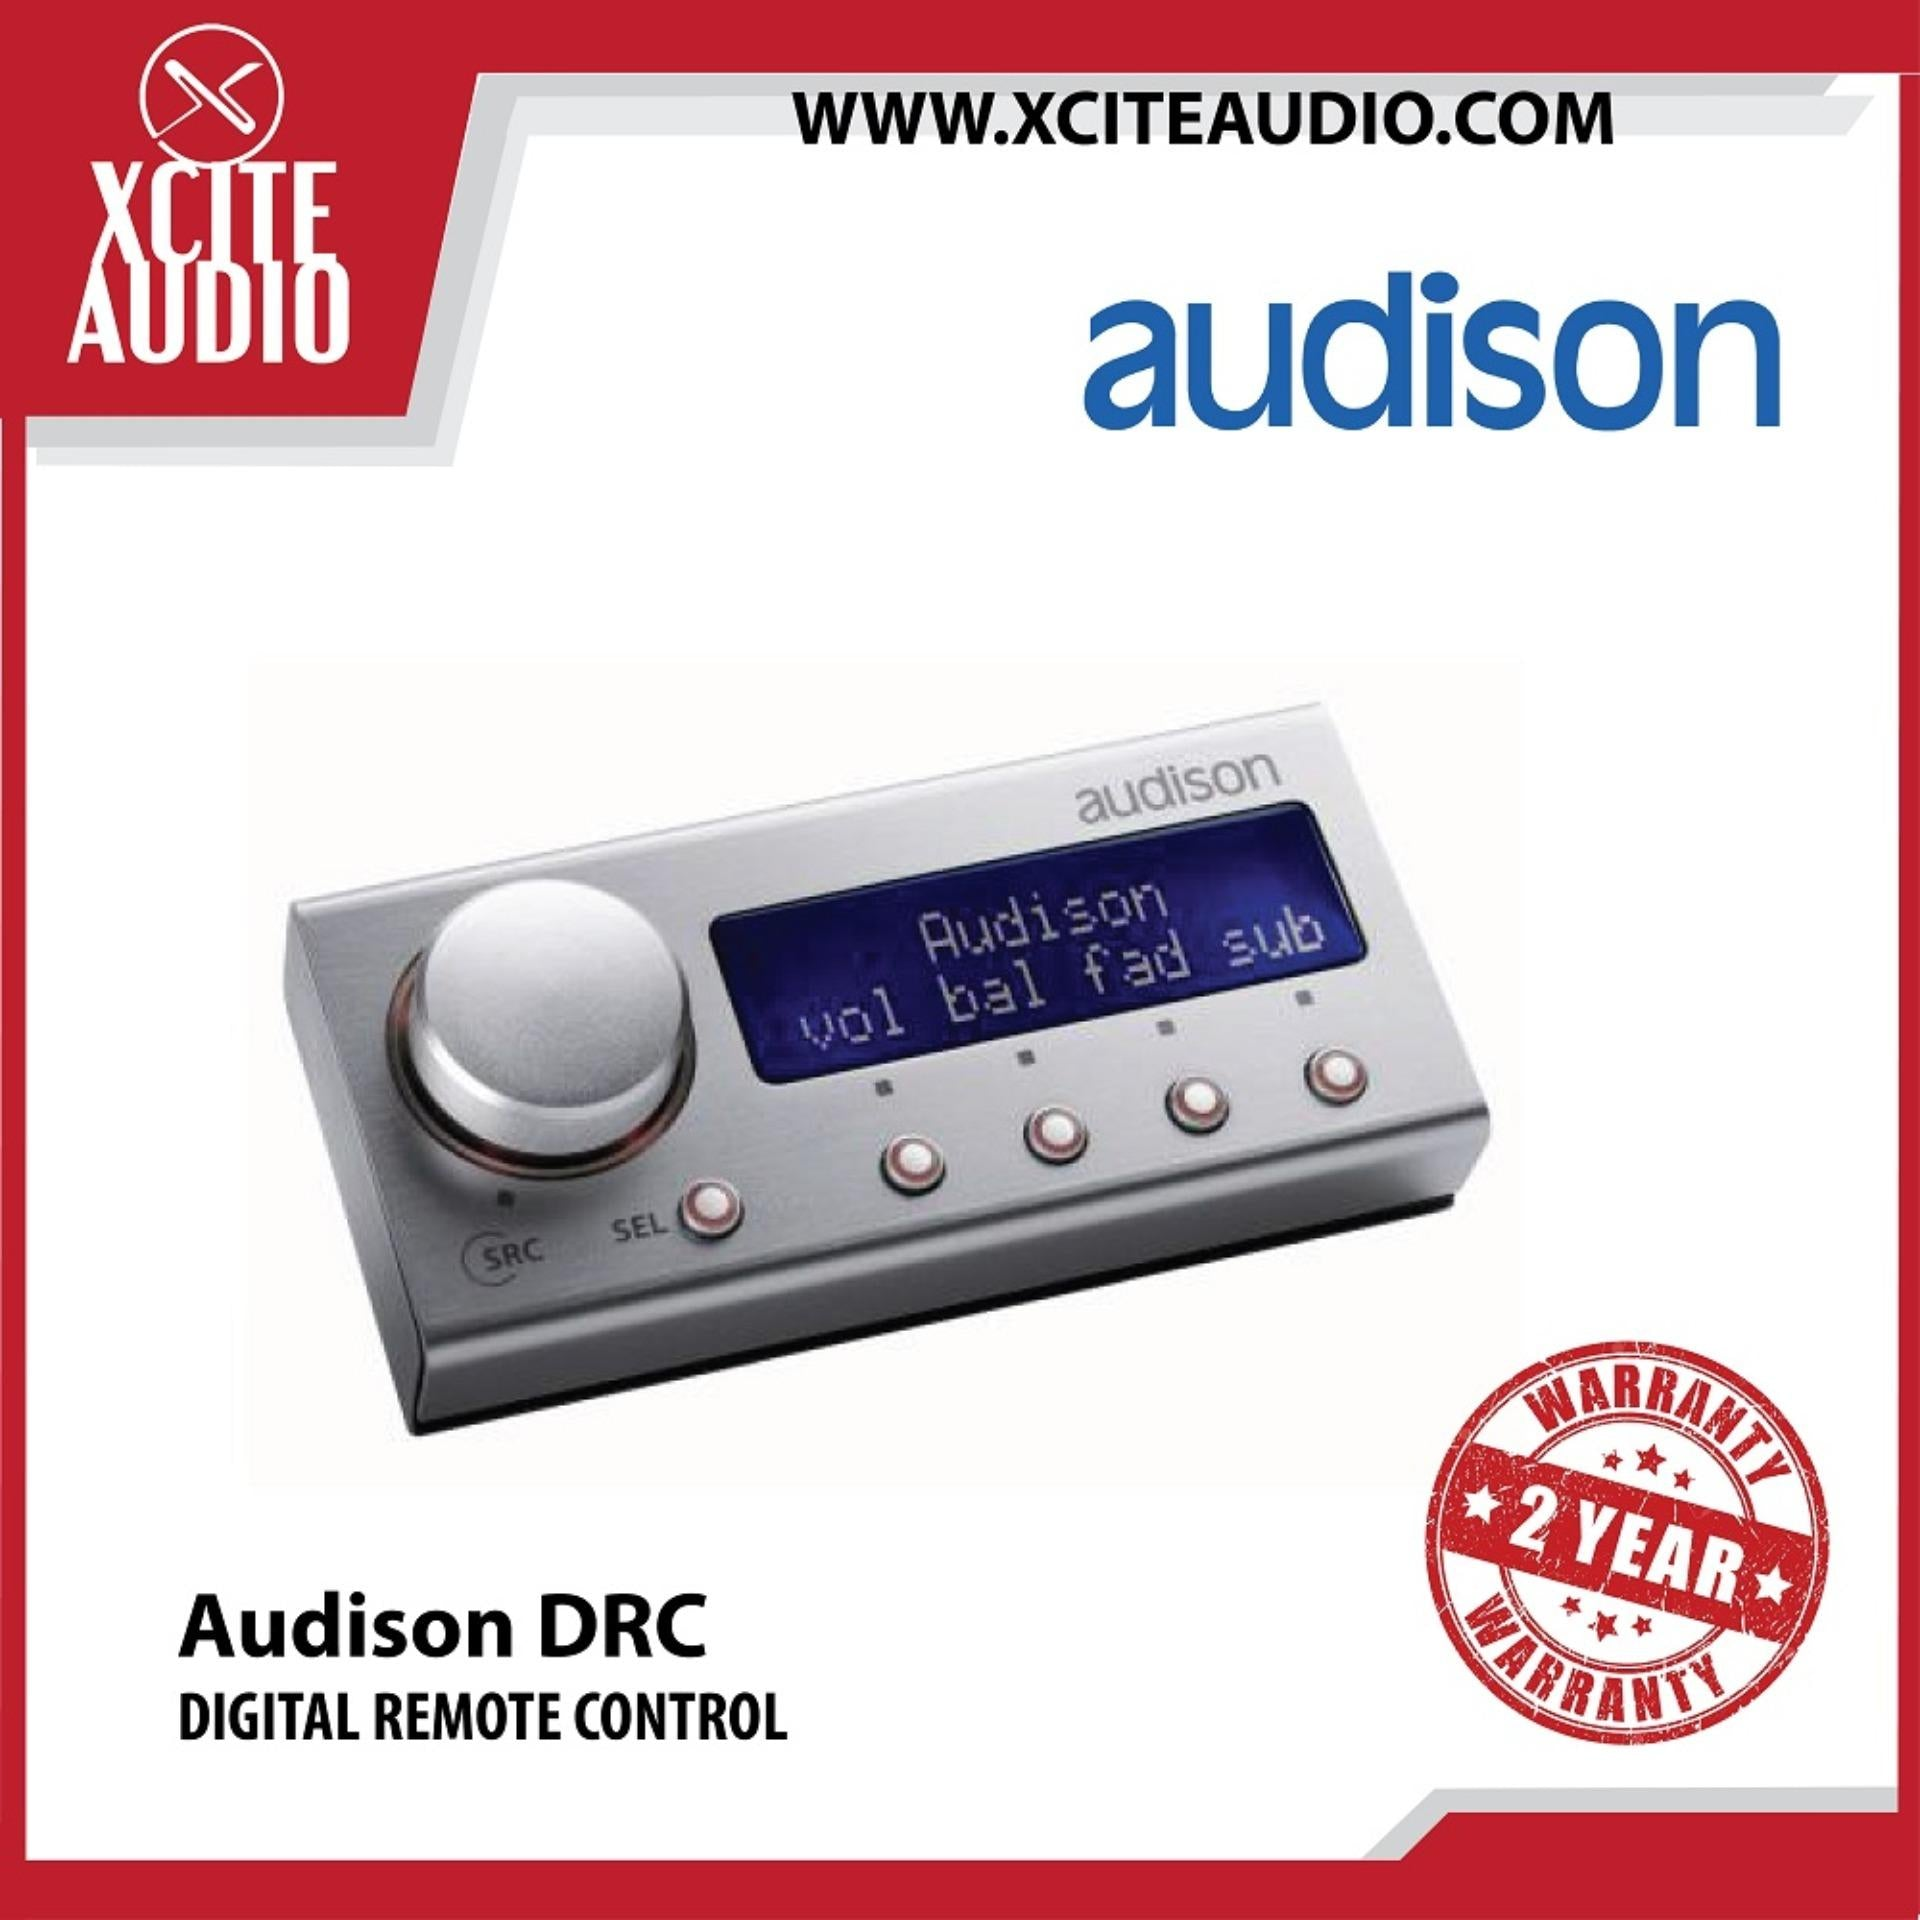 Audison DRC Digital Remote Control - Xcite Audio